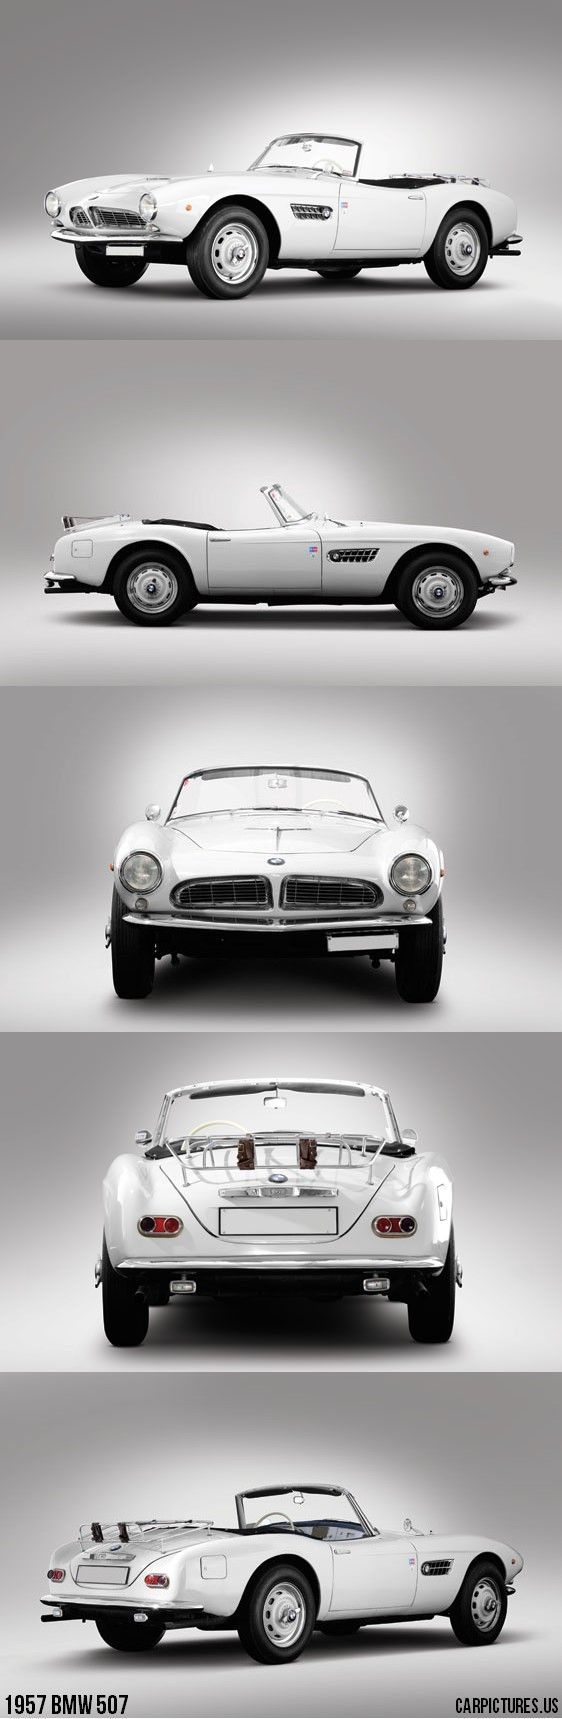 1957 BMW 507 BEVERLY HILLS CAR CLUB is always looking to purchase cars. We Buy and Sell All European and American Classic Cars! We Buy Cars in Any Condition! Top Dollar Paid! Finders Fee Gladly Paid We pick up from anywhere in the U.S.A! Please call Alex Manos : 310-975-0272